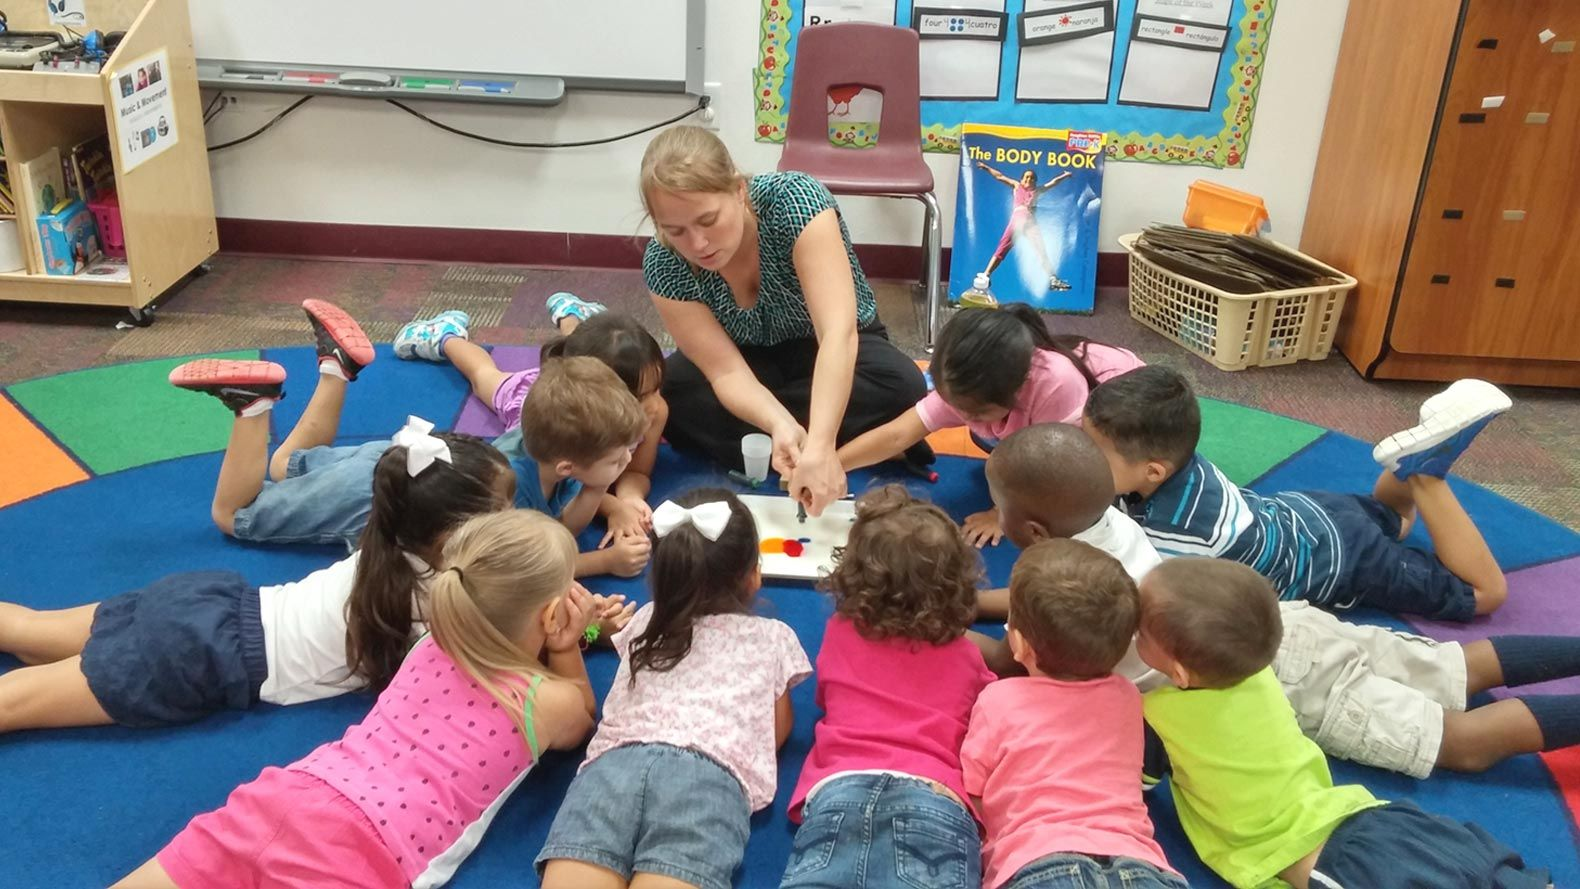 Changes to the certification process made pursuing the credential possible for Audra Damron, a pre-K teacher in Arizona seen here with her students.